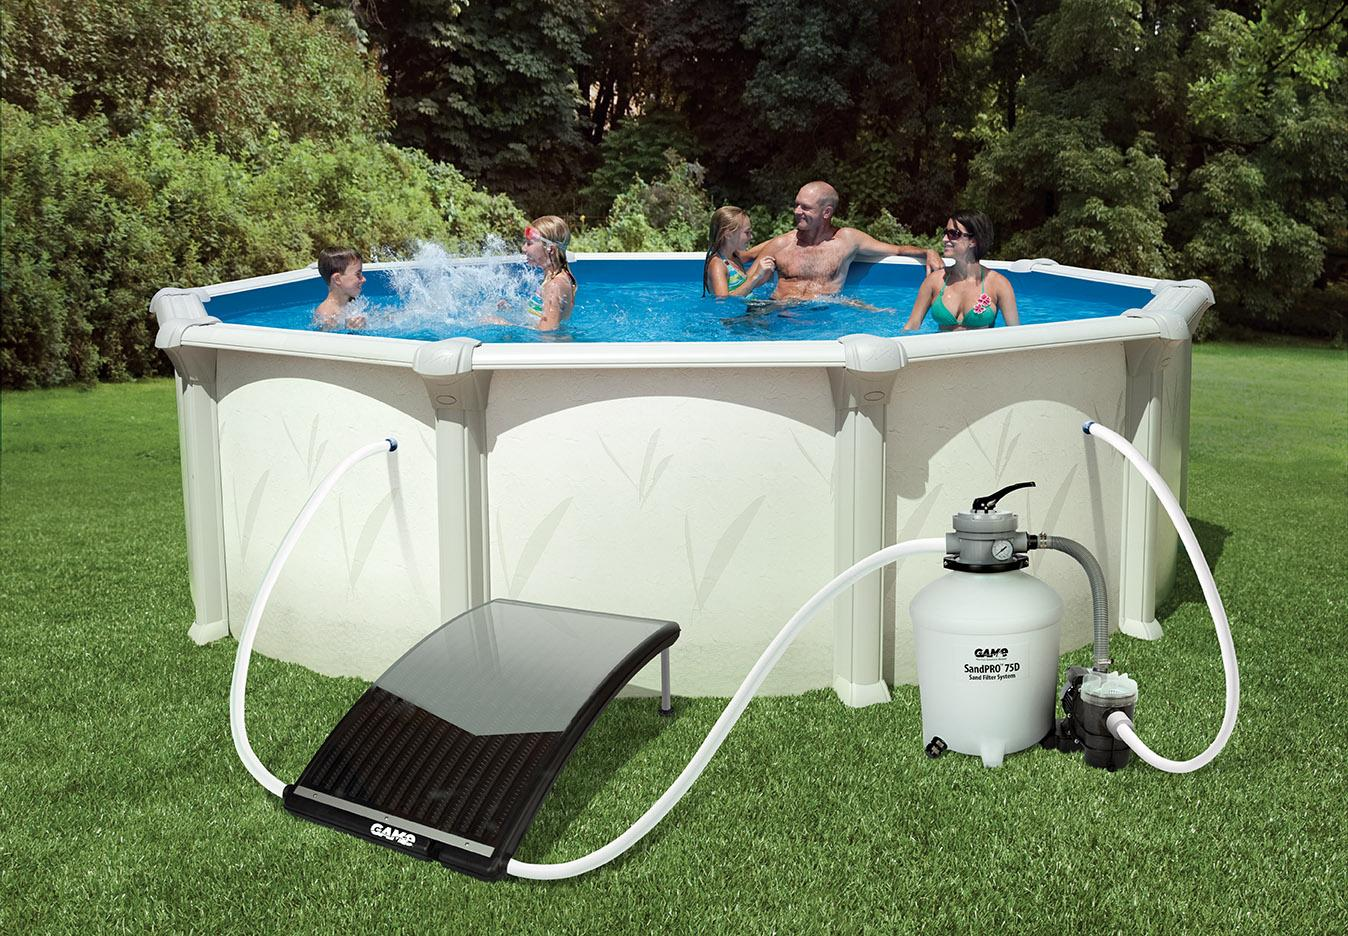 10 best above ground pool heaters in 2019 reviews - How to build an above ground swimming pool ...